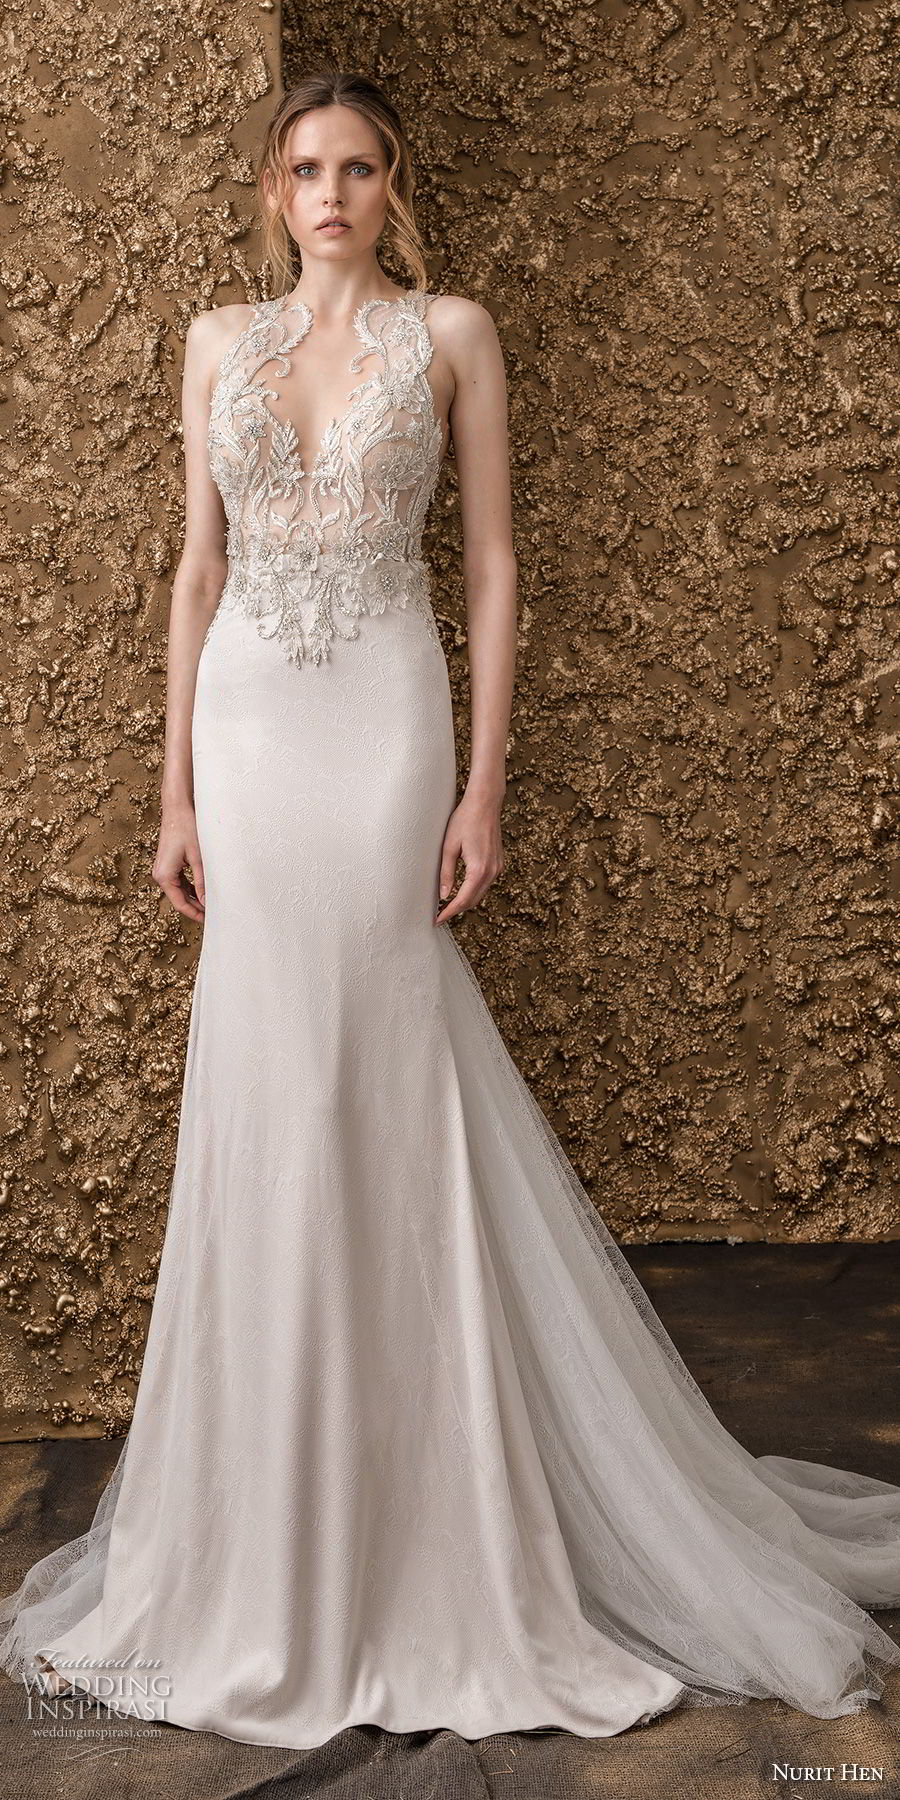 nurit hen 2018 bridal sleeveless halter neck sweetheart neckline heavily embellished bodice glamorous elegant drop waist a  line wedding dress lace back chapel train (10) mv